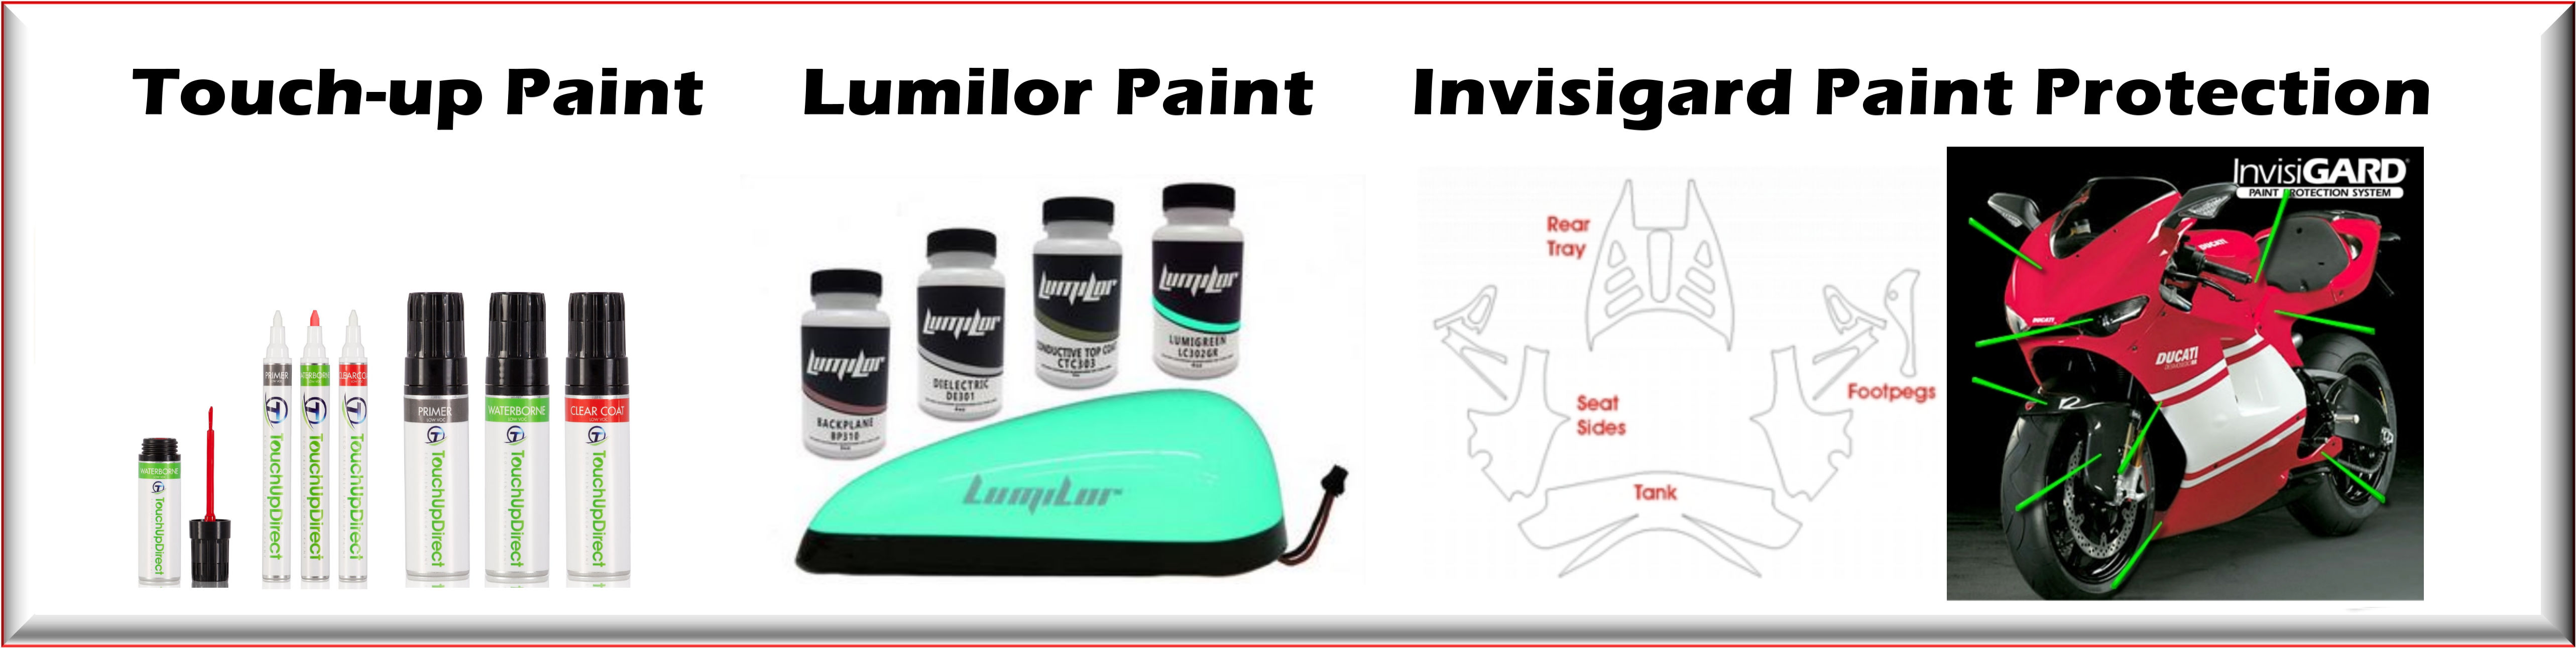 Touch Up Paint, Lumilor Paint, & Invisigard Paint Protection